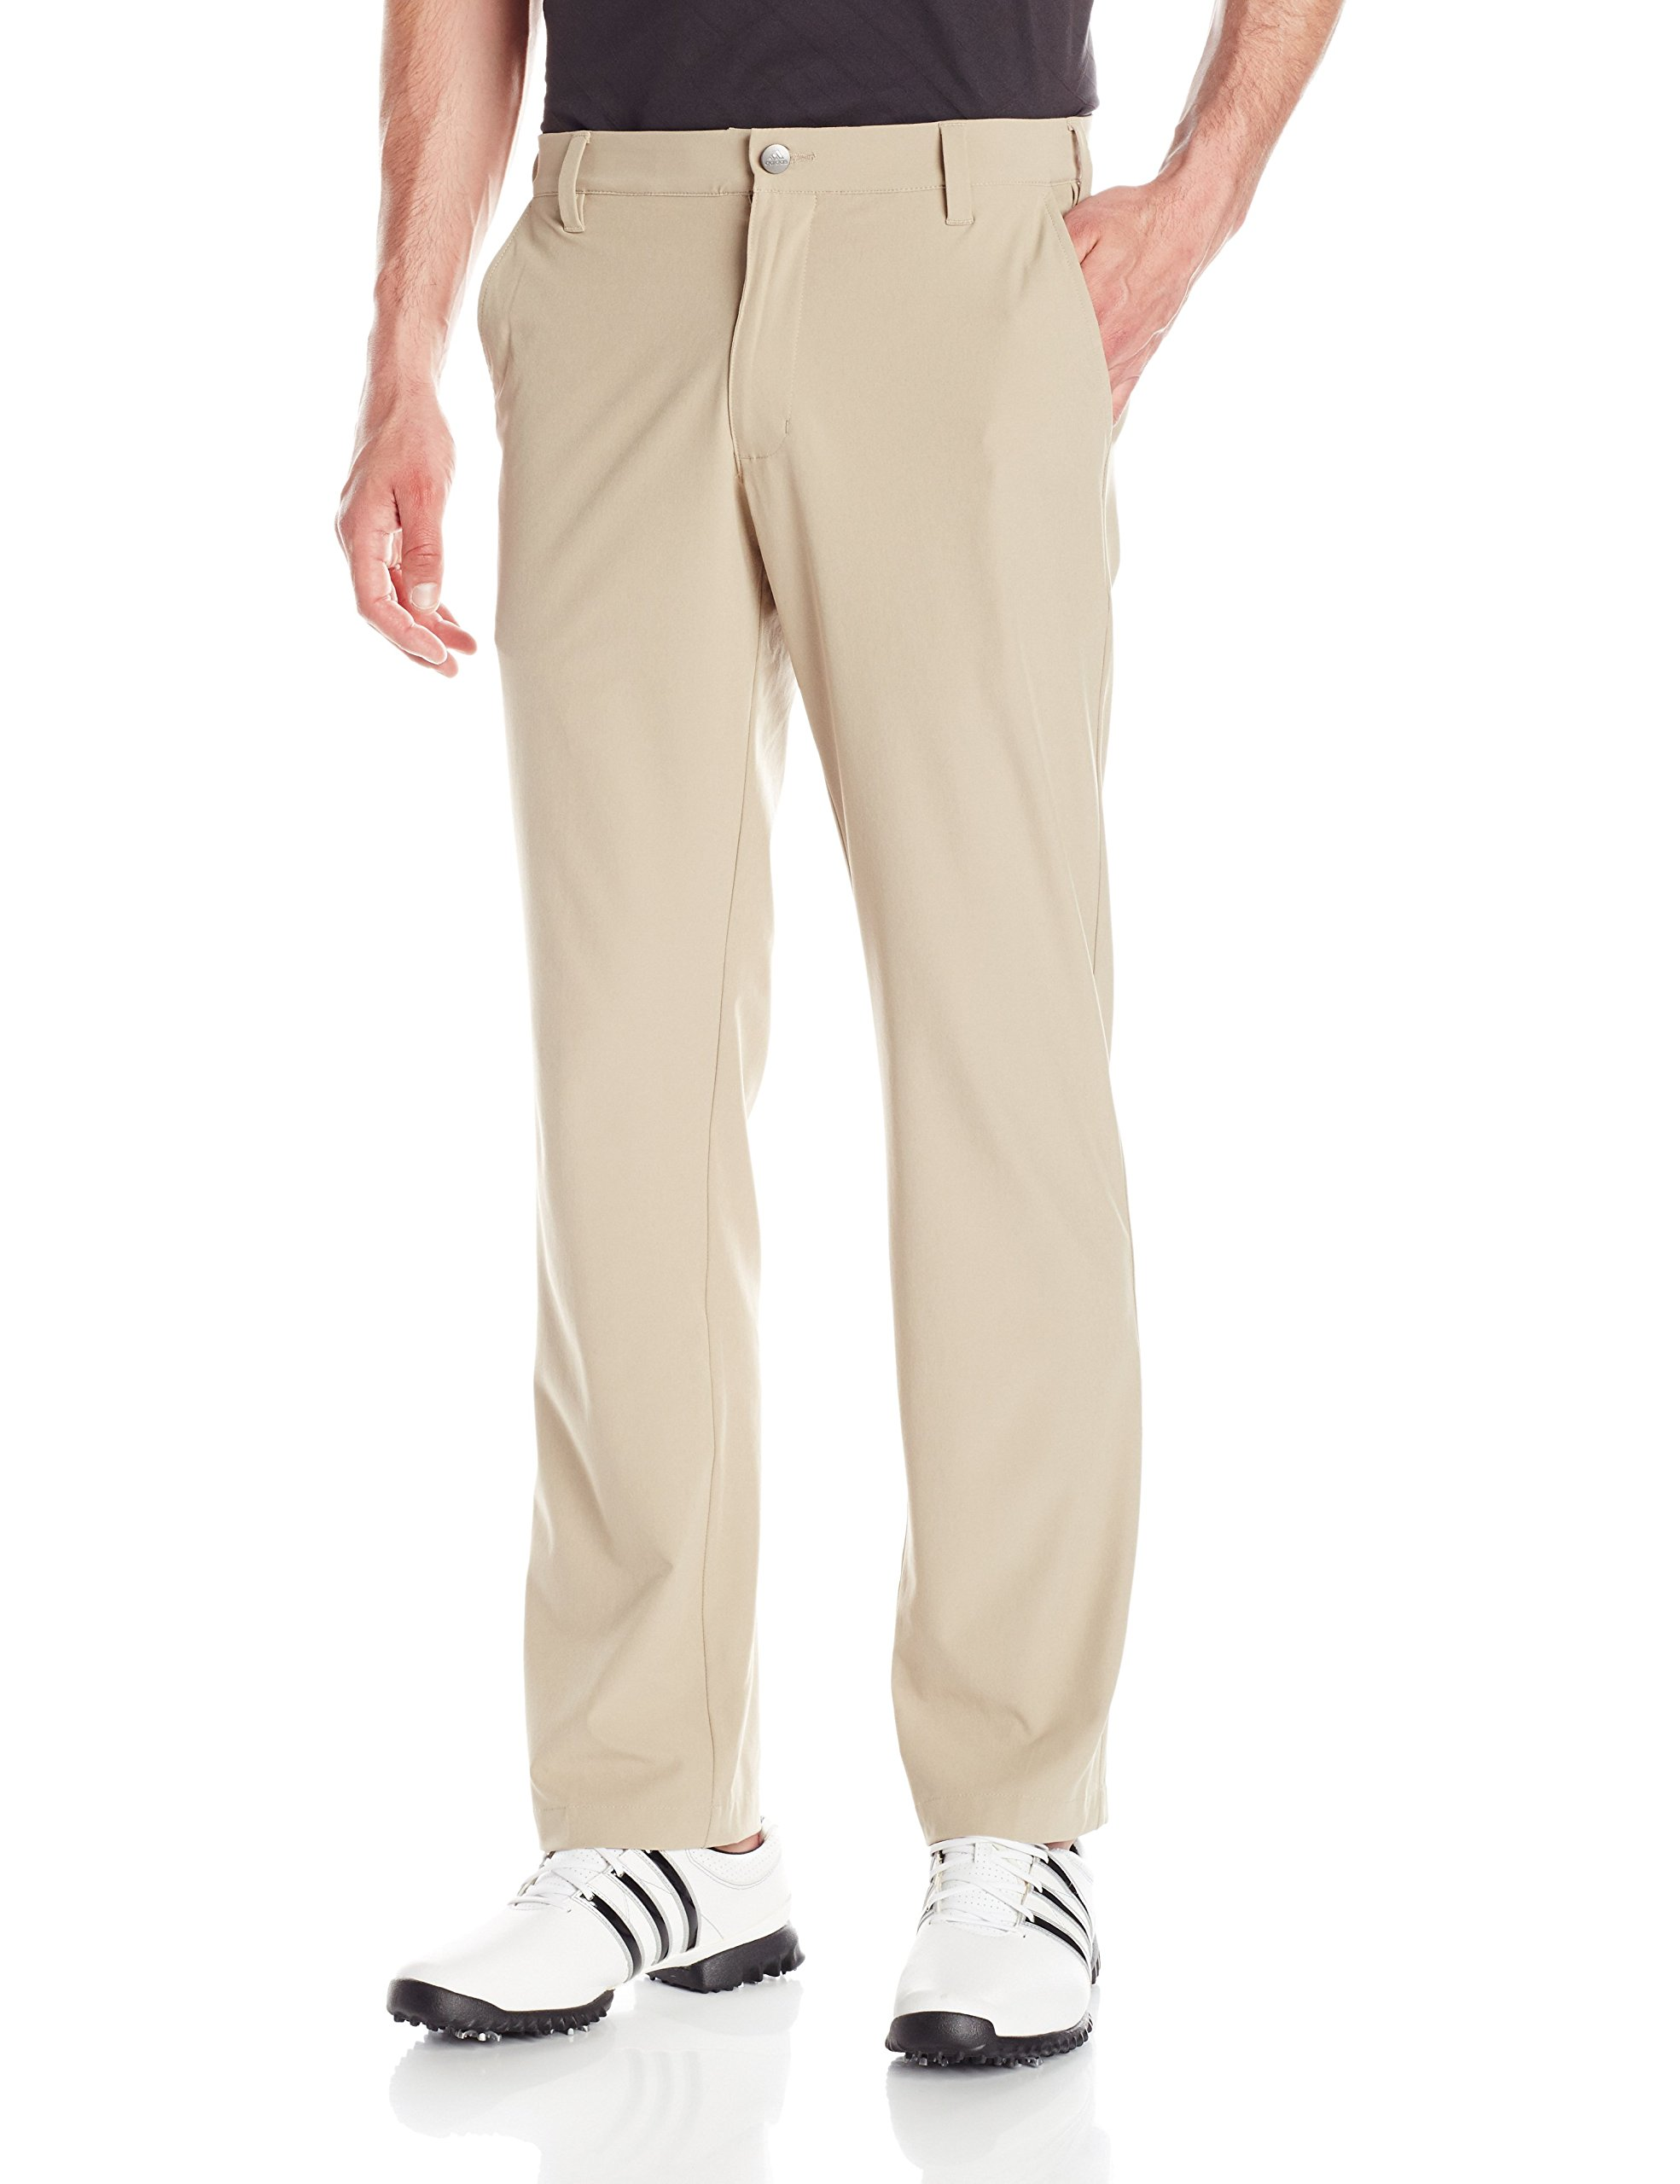 adidas Golf Men's Ultimate Regular Fit Pants, Khaki, Size 34/30 by adidas